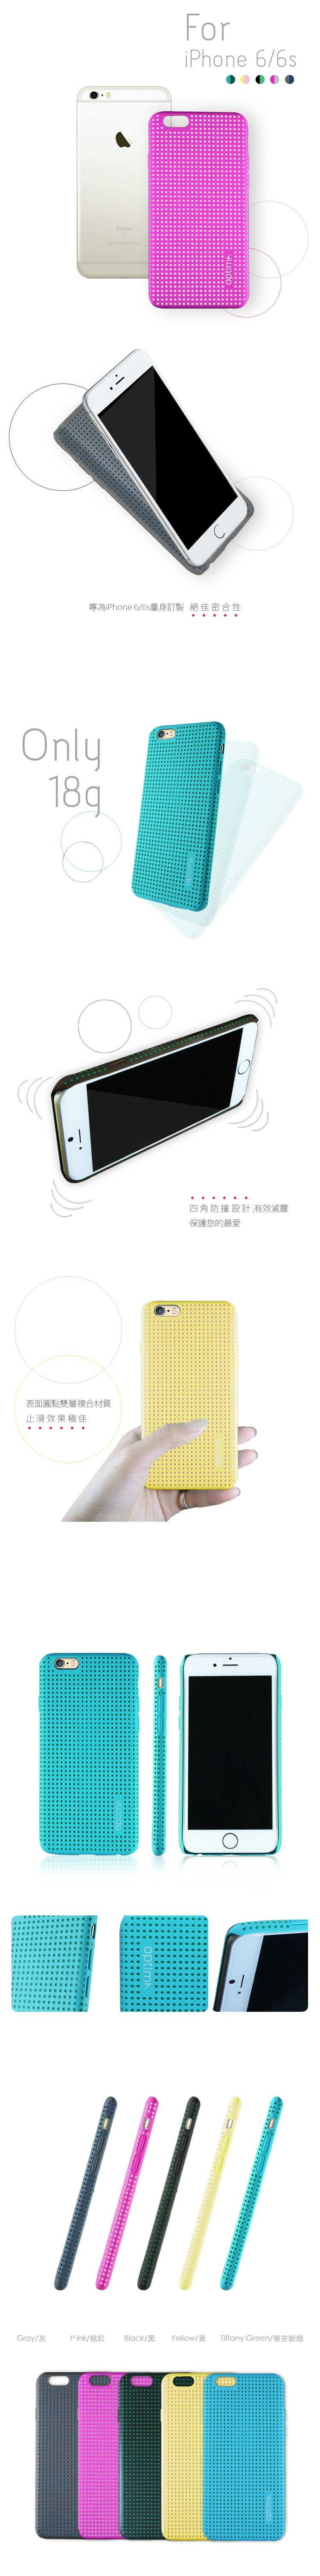 Optima iPhone6/6s Dazzle Case 止滑背蓋-桃紅